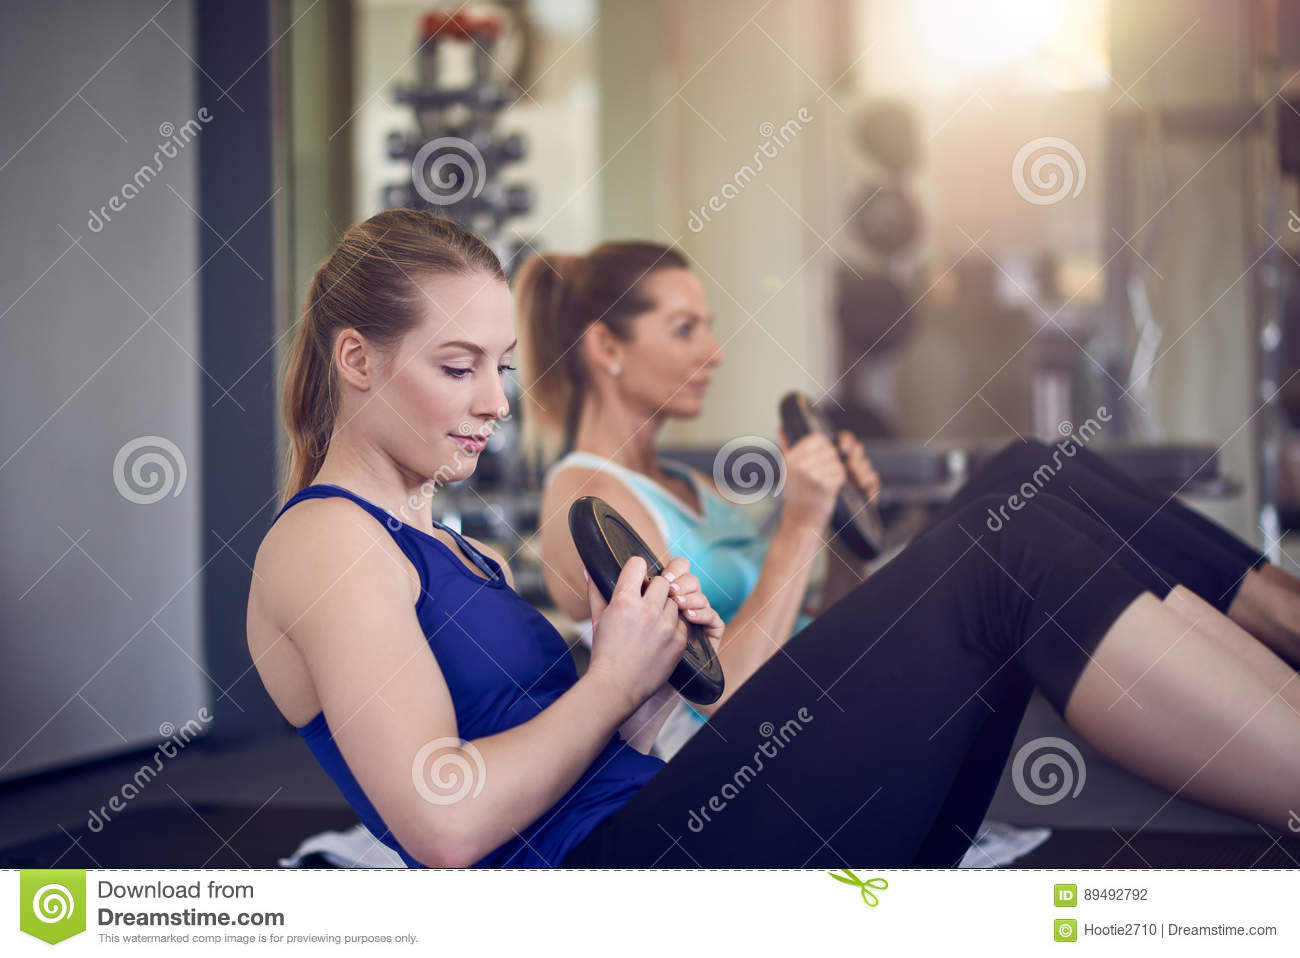 Pair of young adult women doing abdominal muscle exercises